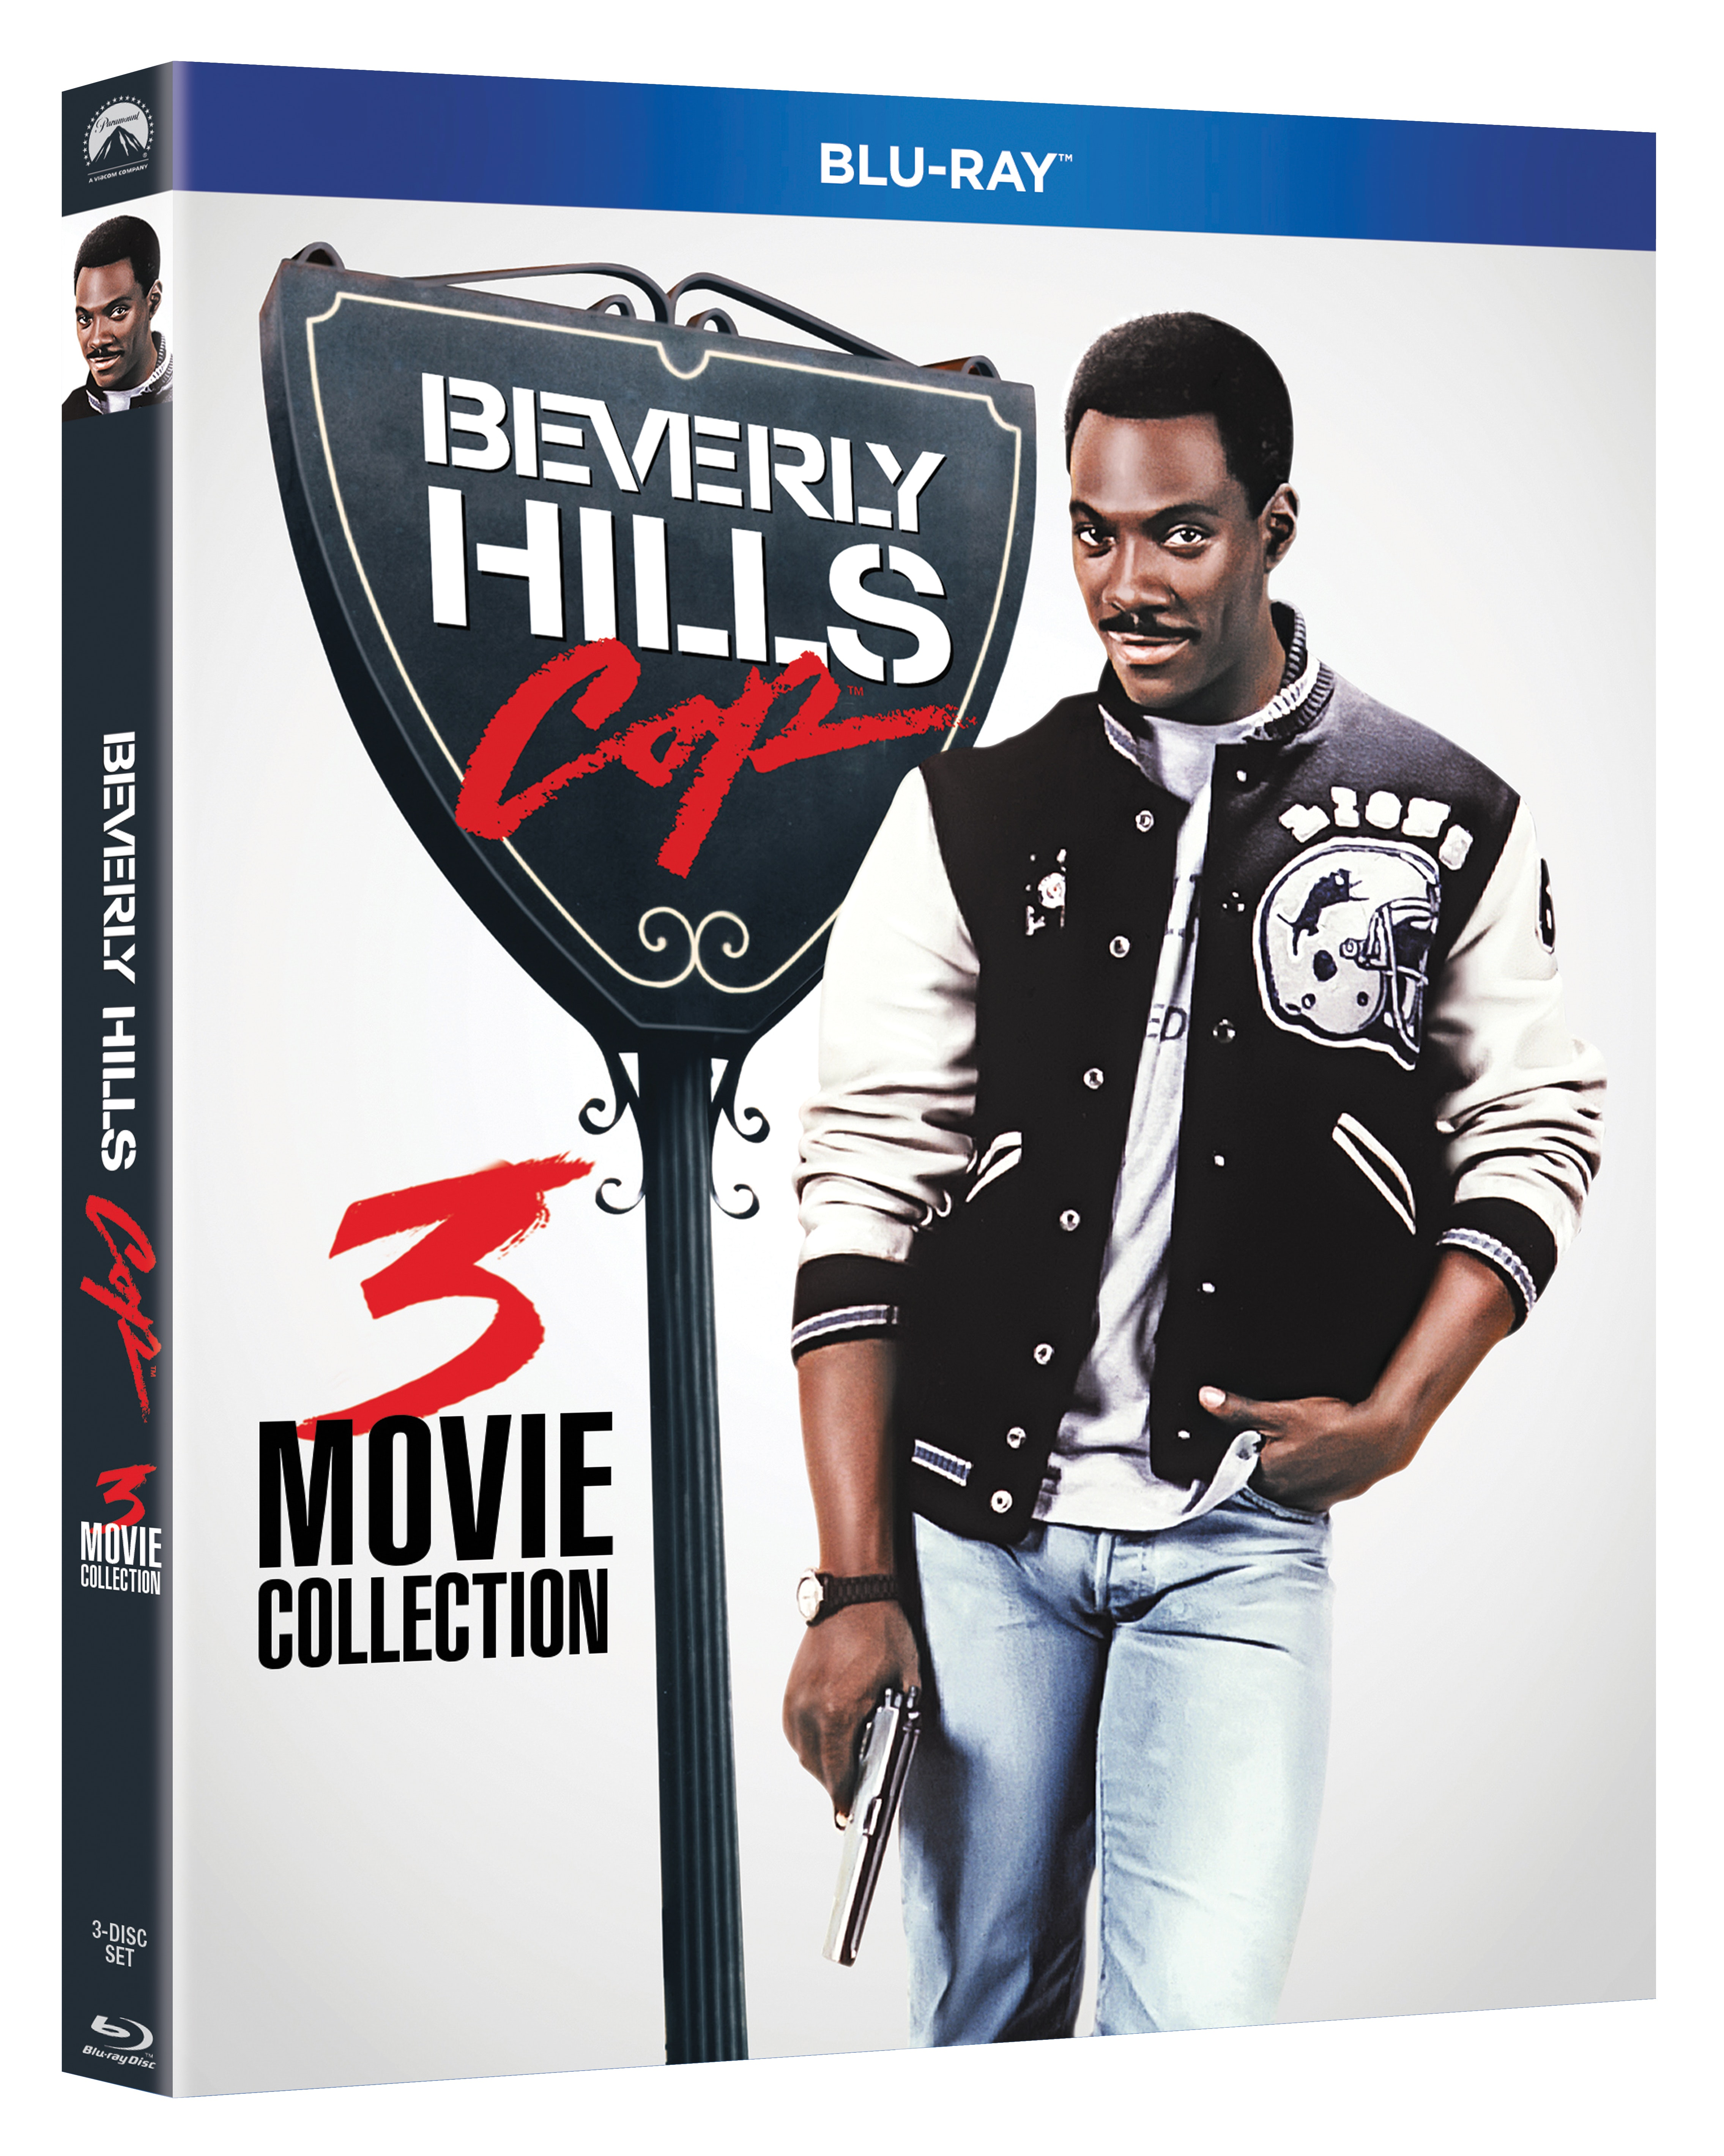 BEVERLY HILLS COP COLLECTION Blu-ray